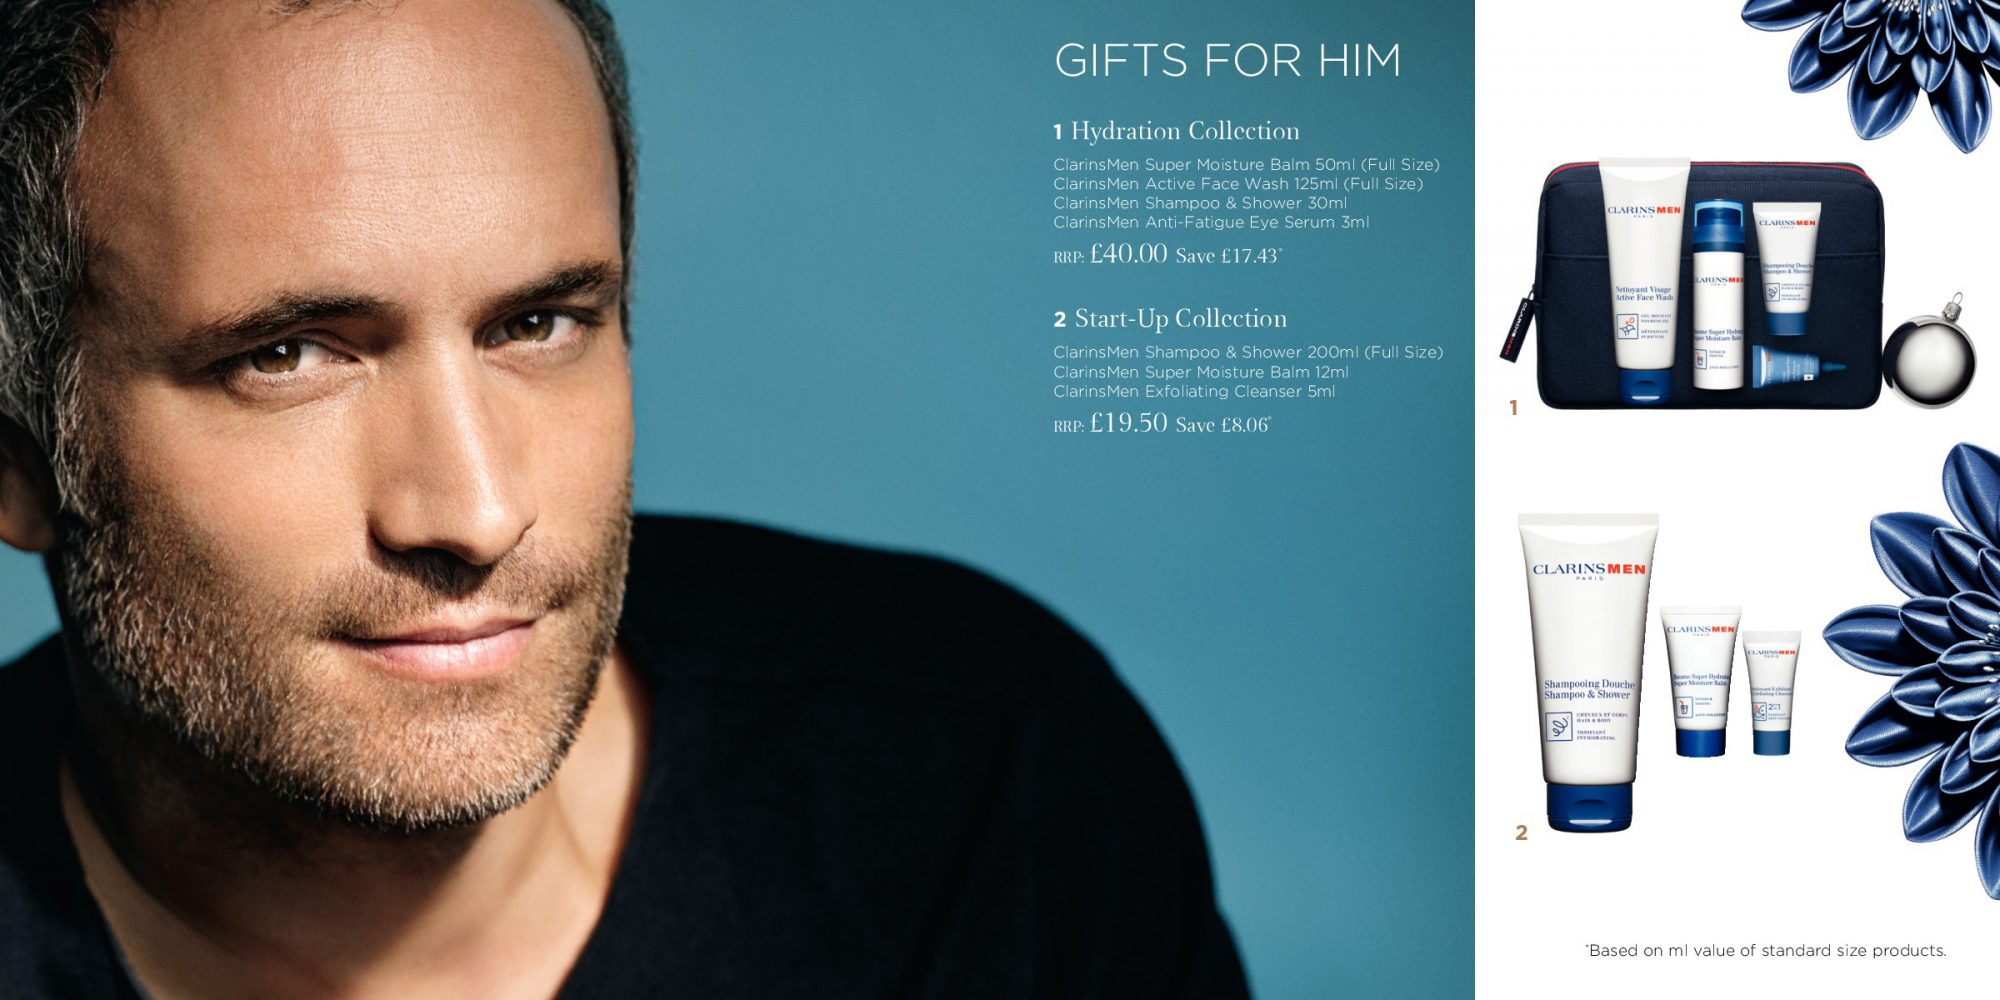 Clarins Brochure Christmas Gifts Spread 4 - Gift For Him Hydration Start-Up 2018